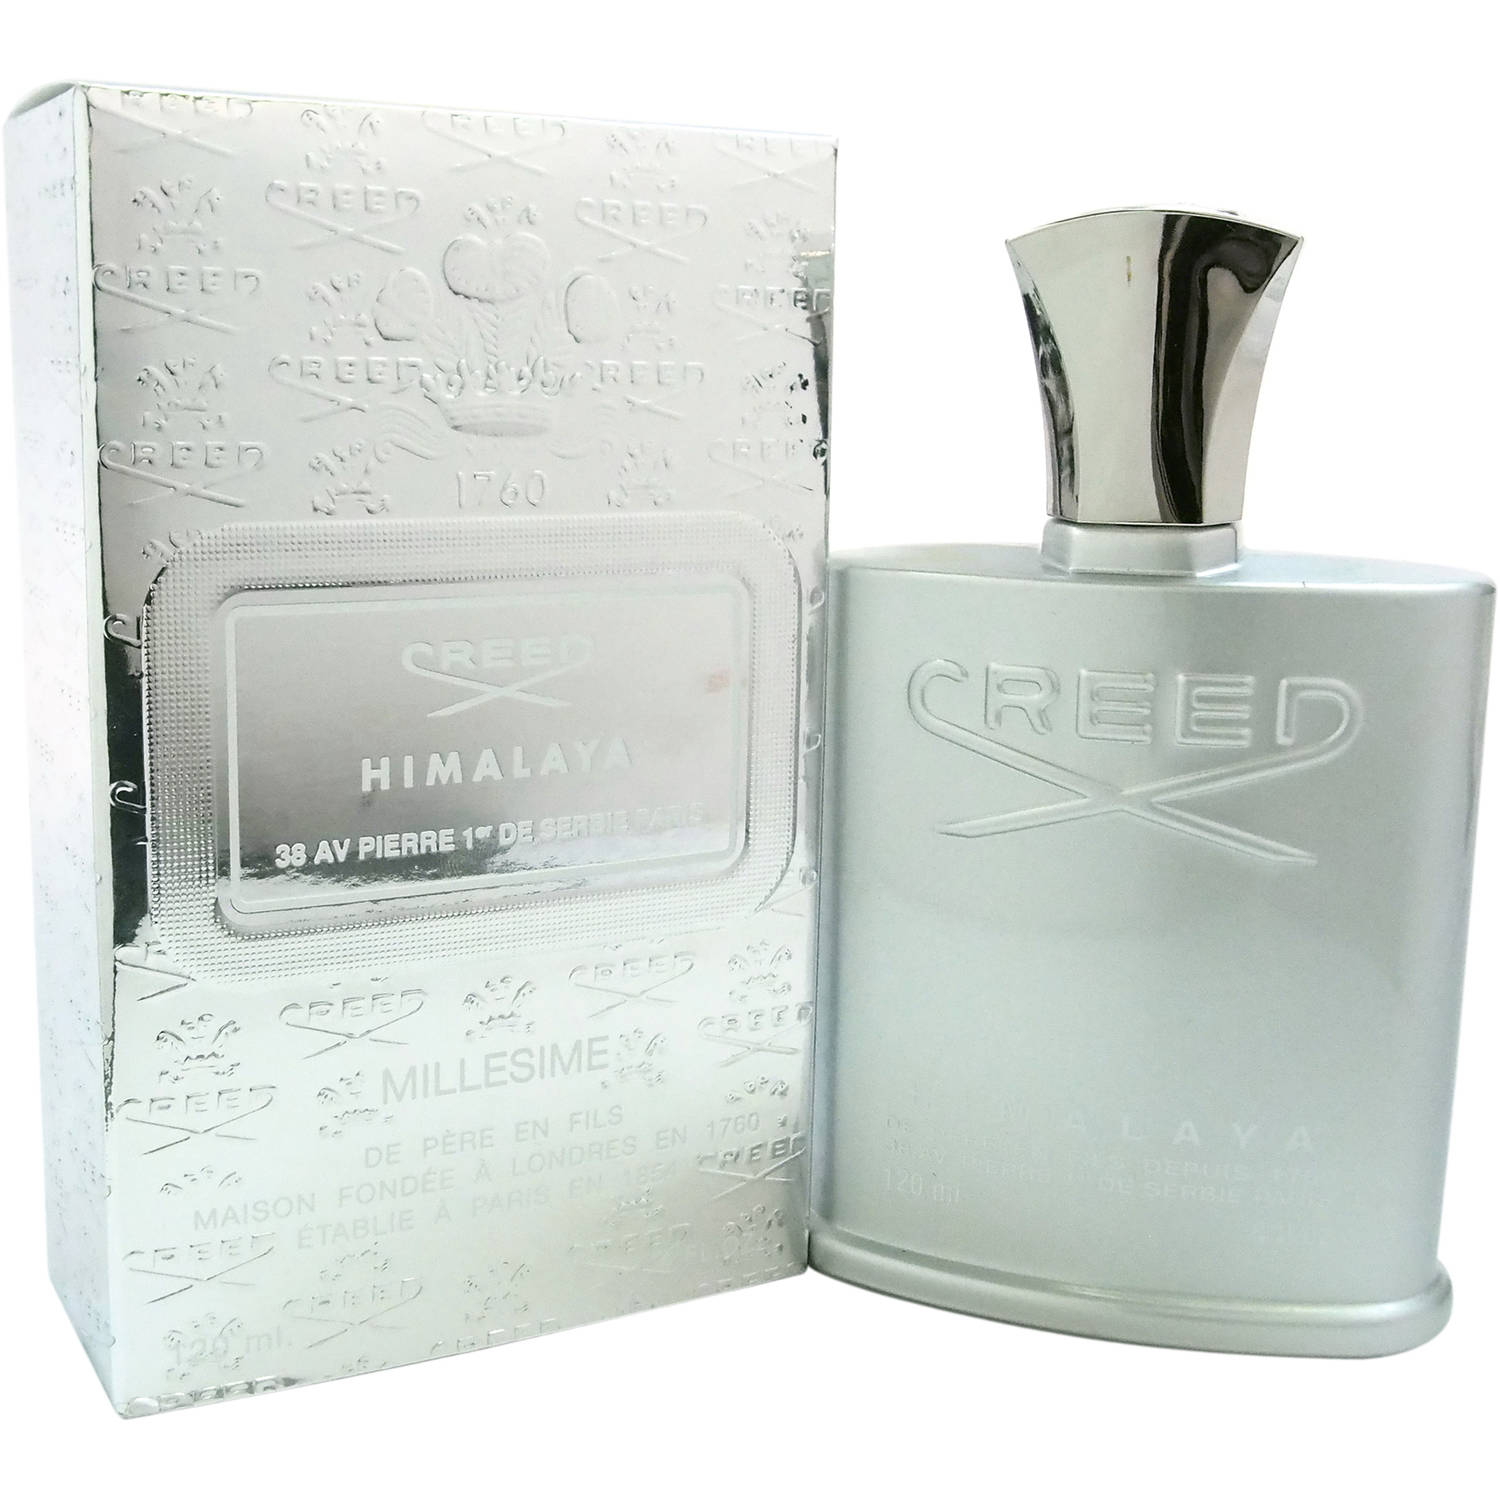 Creed Creed Spring Flower Millesime Eau De Parfum Spray For Women